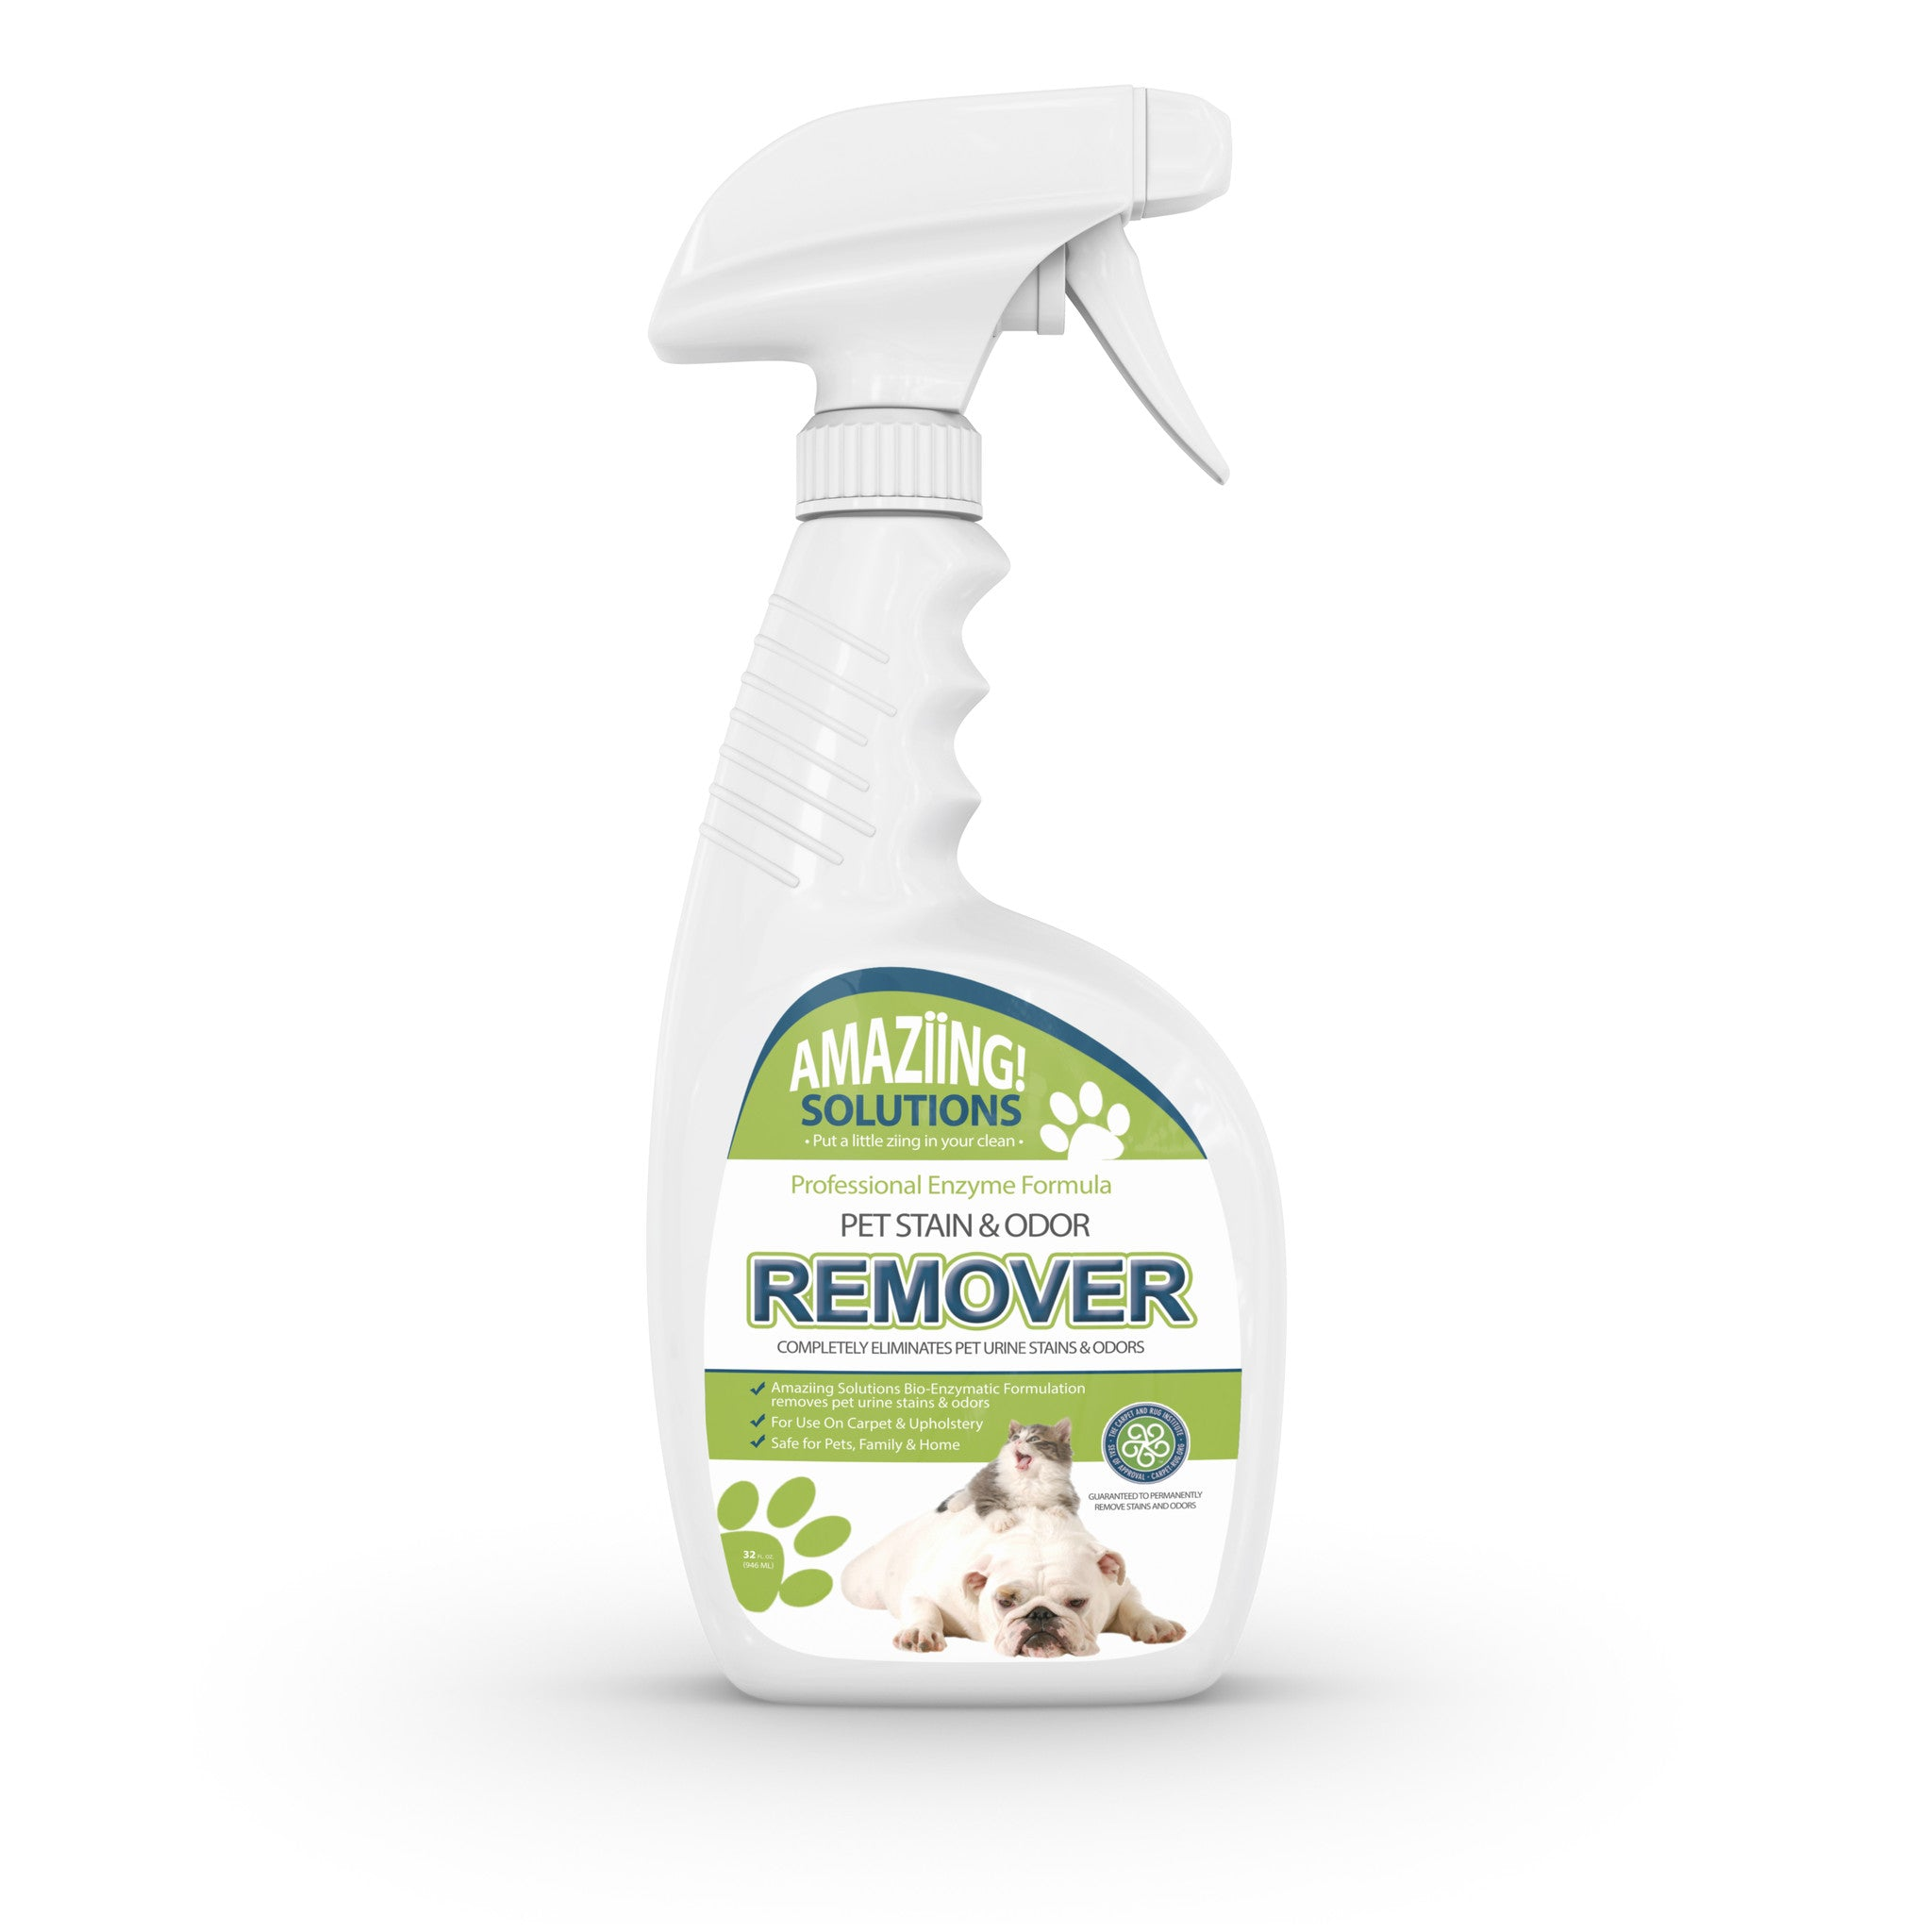 Dog Smell Of Rug: Pet Stain & Odor Remover